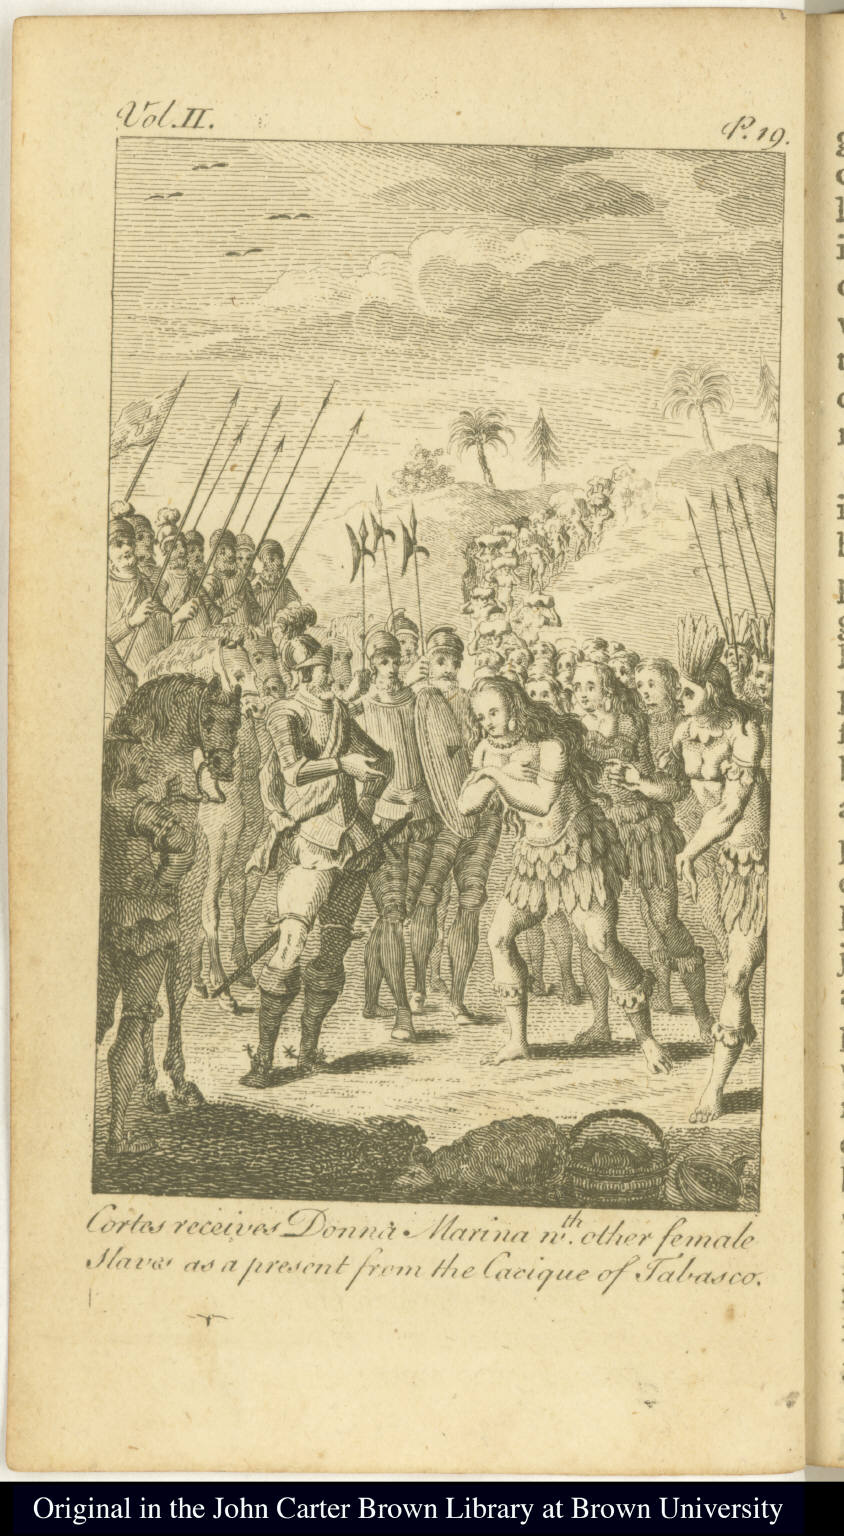 Cortes receives Donna Marina w[i]th. other female Slaves as a present from the Cacique of Tabasco.